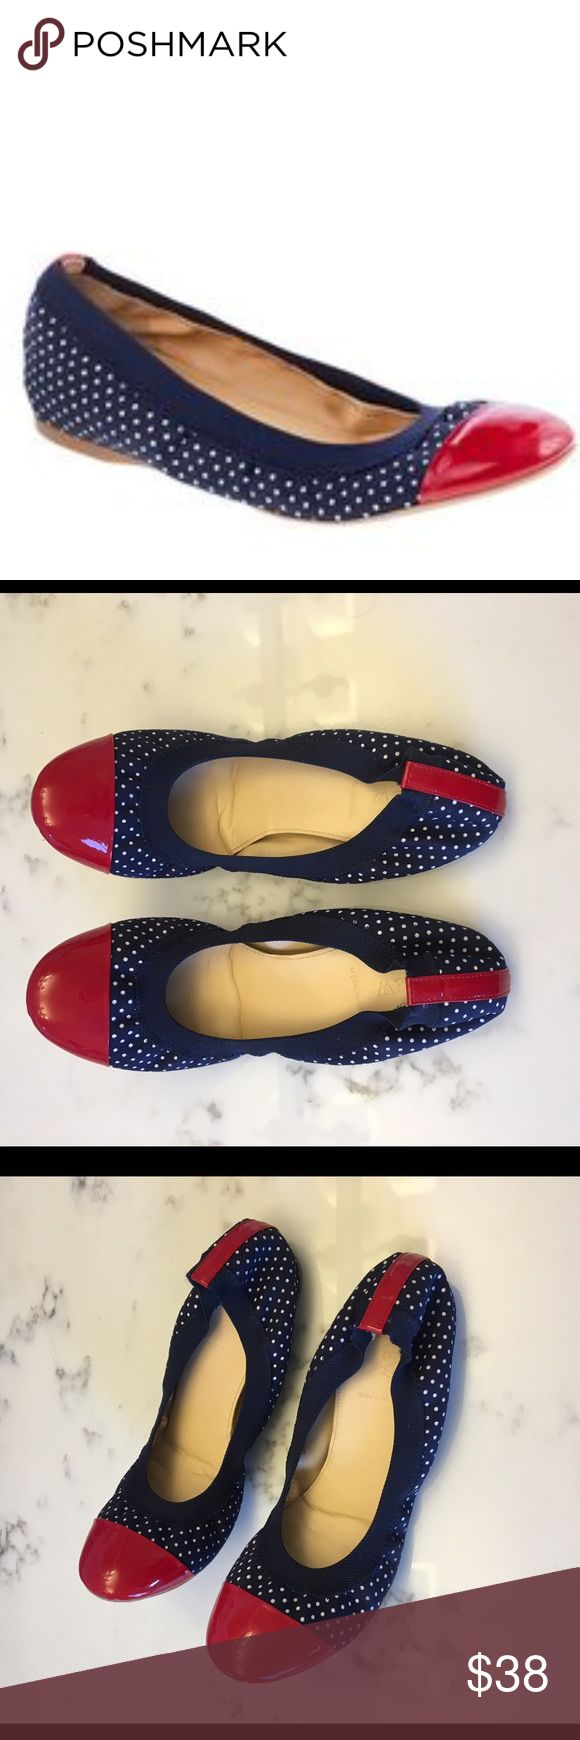 J.Crew Polka Dot Patent Cap Toe Ballet Flat Size 8 J.Crew Polka Dot Patent Cap Toe Ballet Flat Size 8. Navy blue with red cap toe and detail on the back, white polka dots. These are from J.Crew not the outlet. Gently worn (twice). This style curls gently when not worn but molds to your foot when put on. See pictures for gentle wear on the bottom. I just have too many pairs of shoes. J. Crew Shoes Flats & Loafers